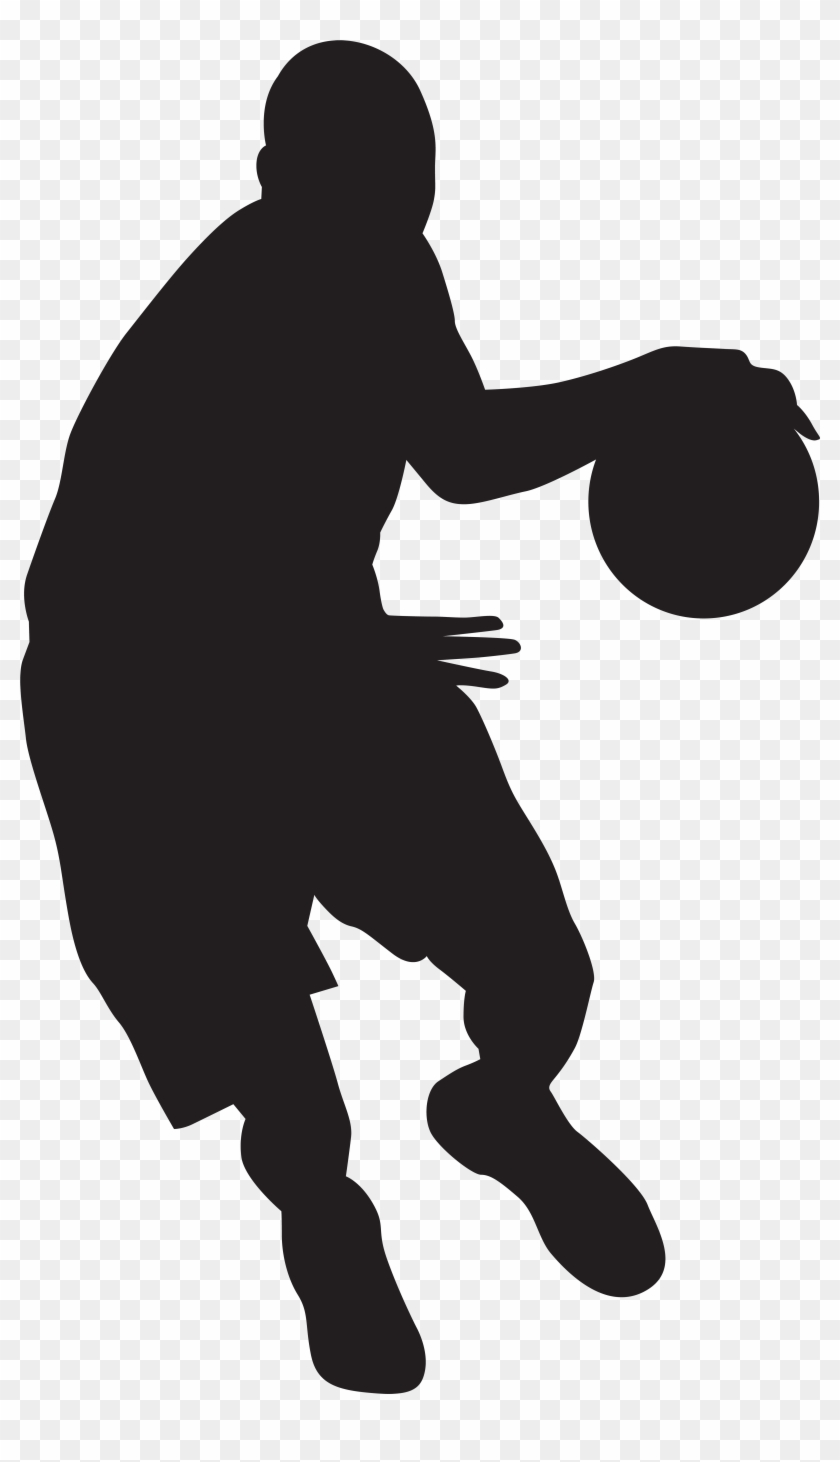 Basketball Player Silhouette Png Clip Art Imageu200b - Basketball Player Silhouette Png #18213